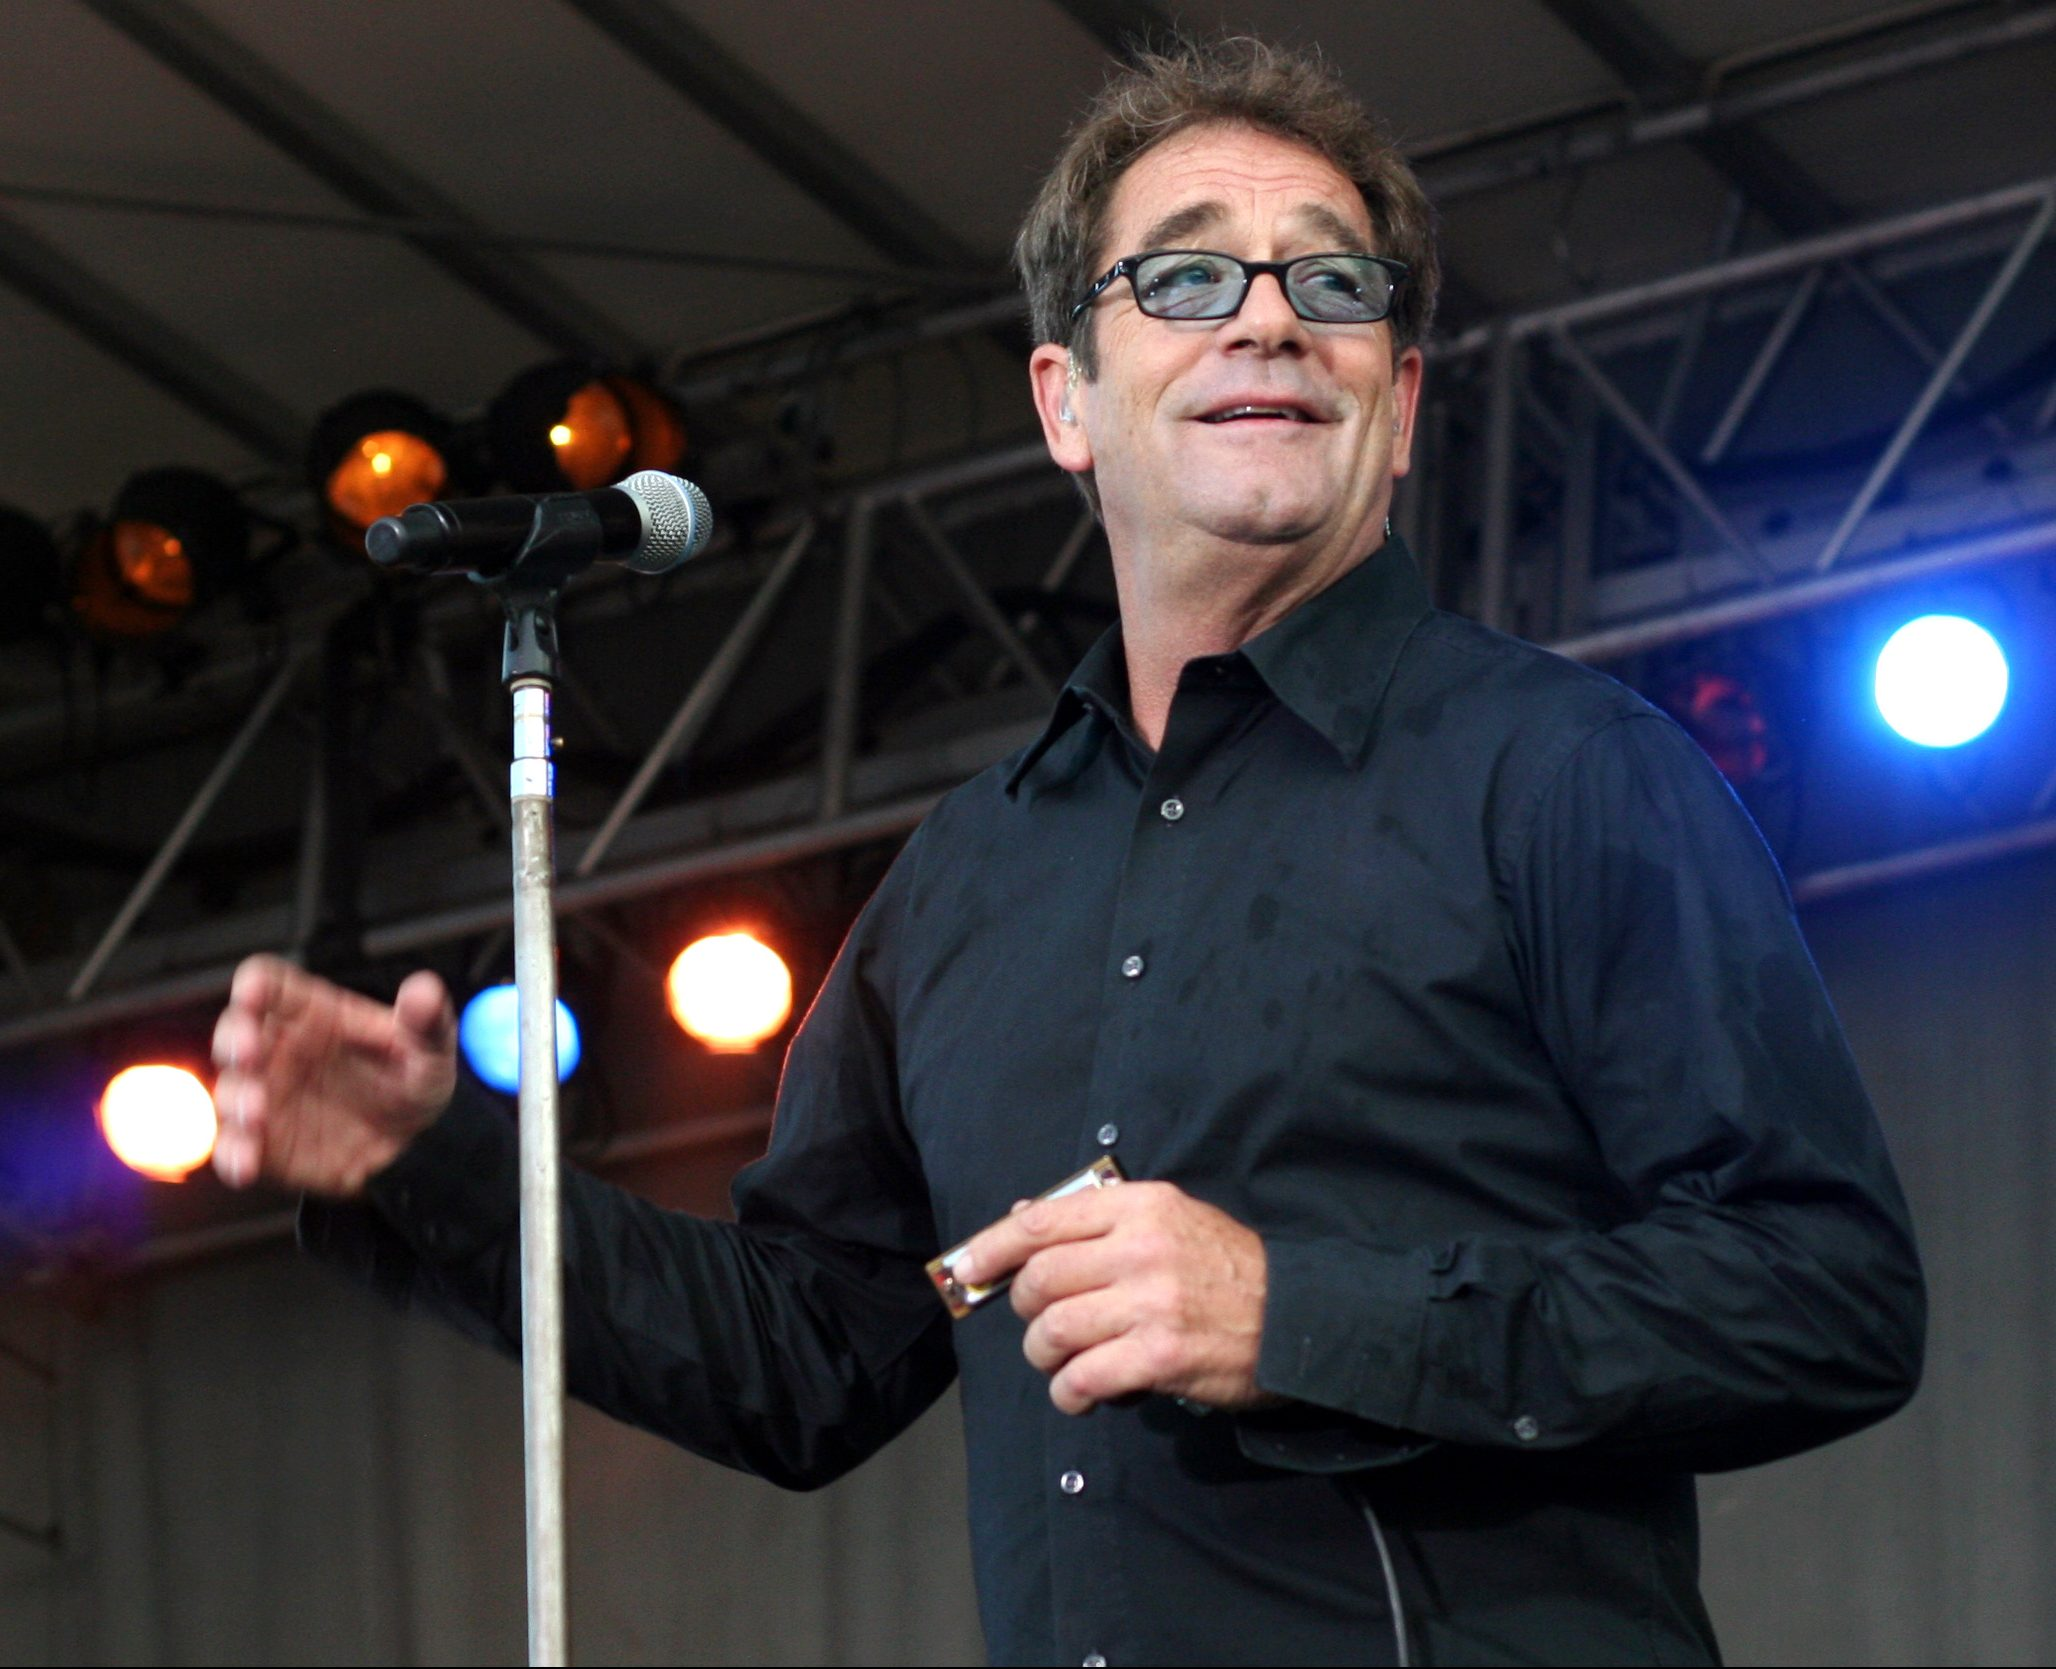 Huey Lewis and the News 2013 9138278434 e1625838865409 20 Things You Might Not Have Known About Huey Lewis and the News